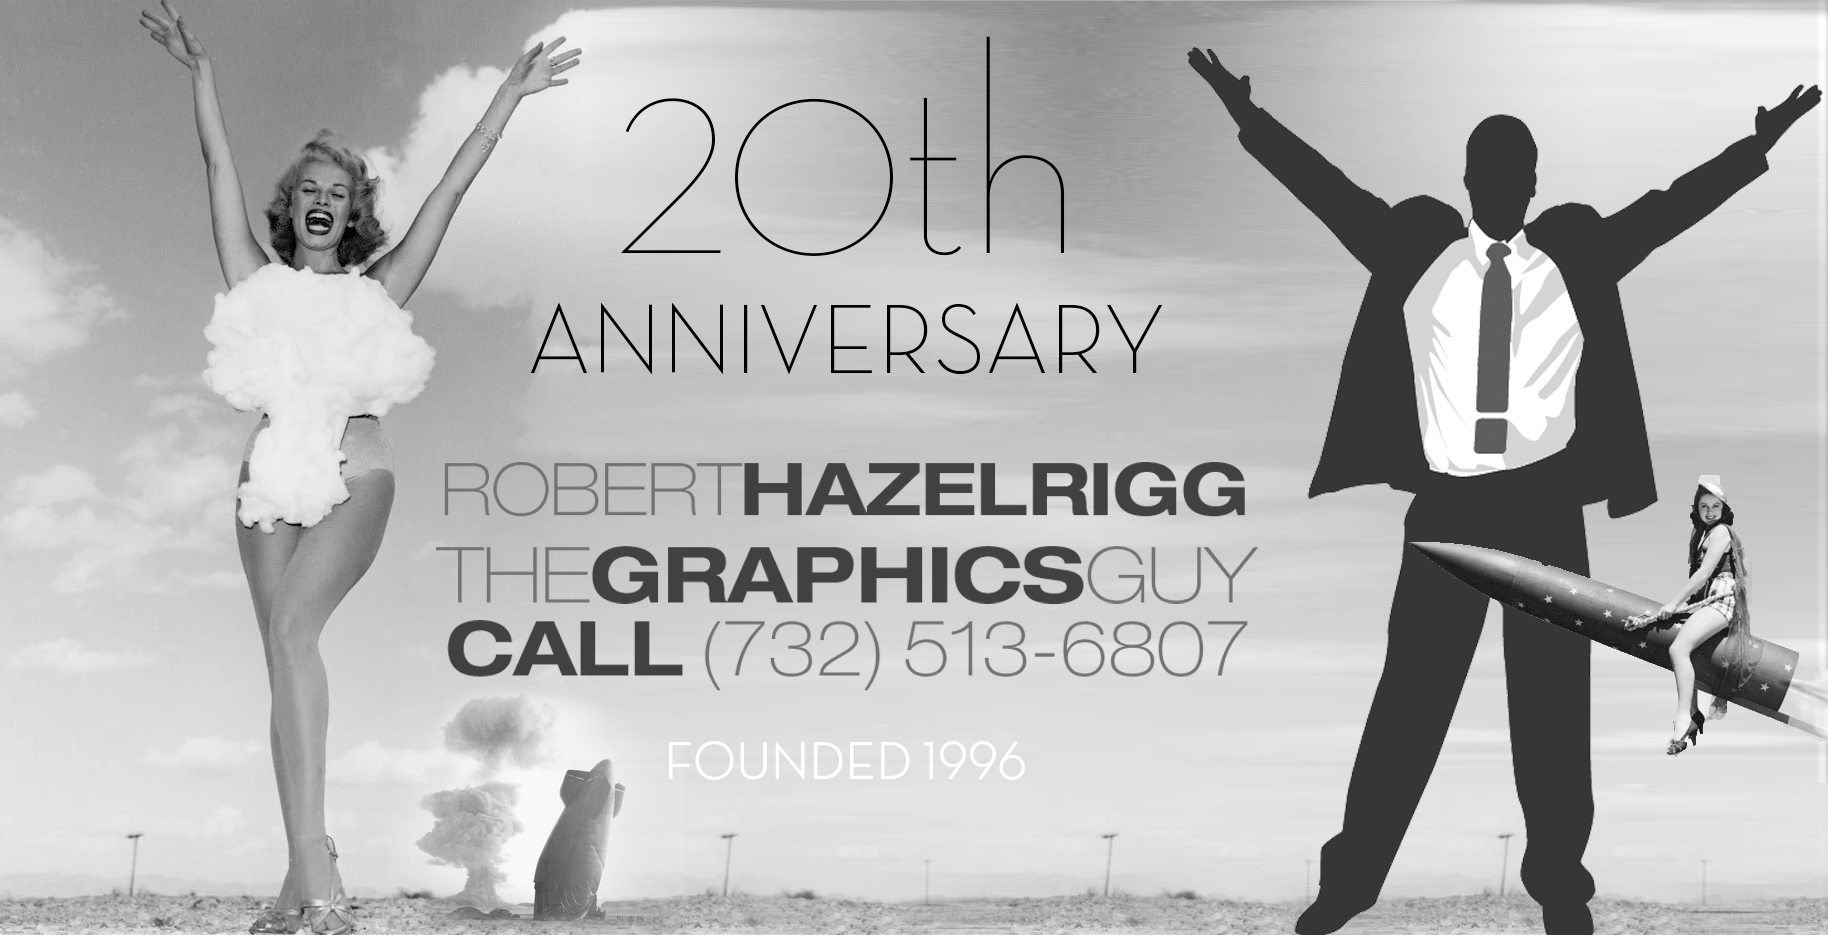 Leading the Graphic Design Community for 20 Years